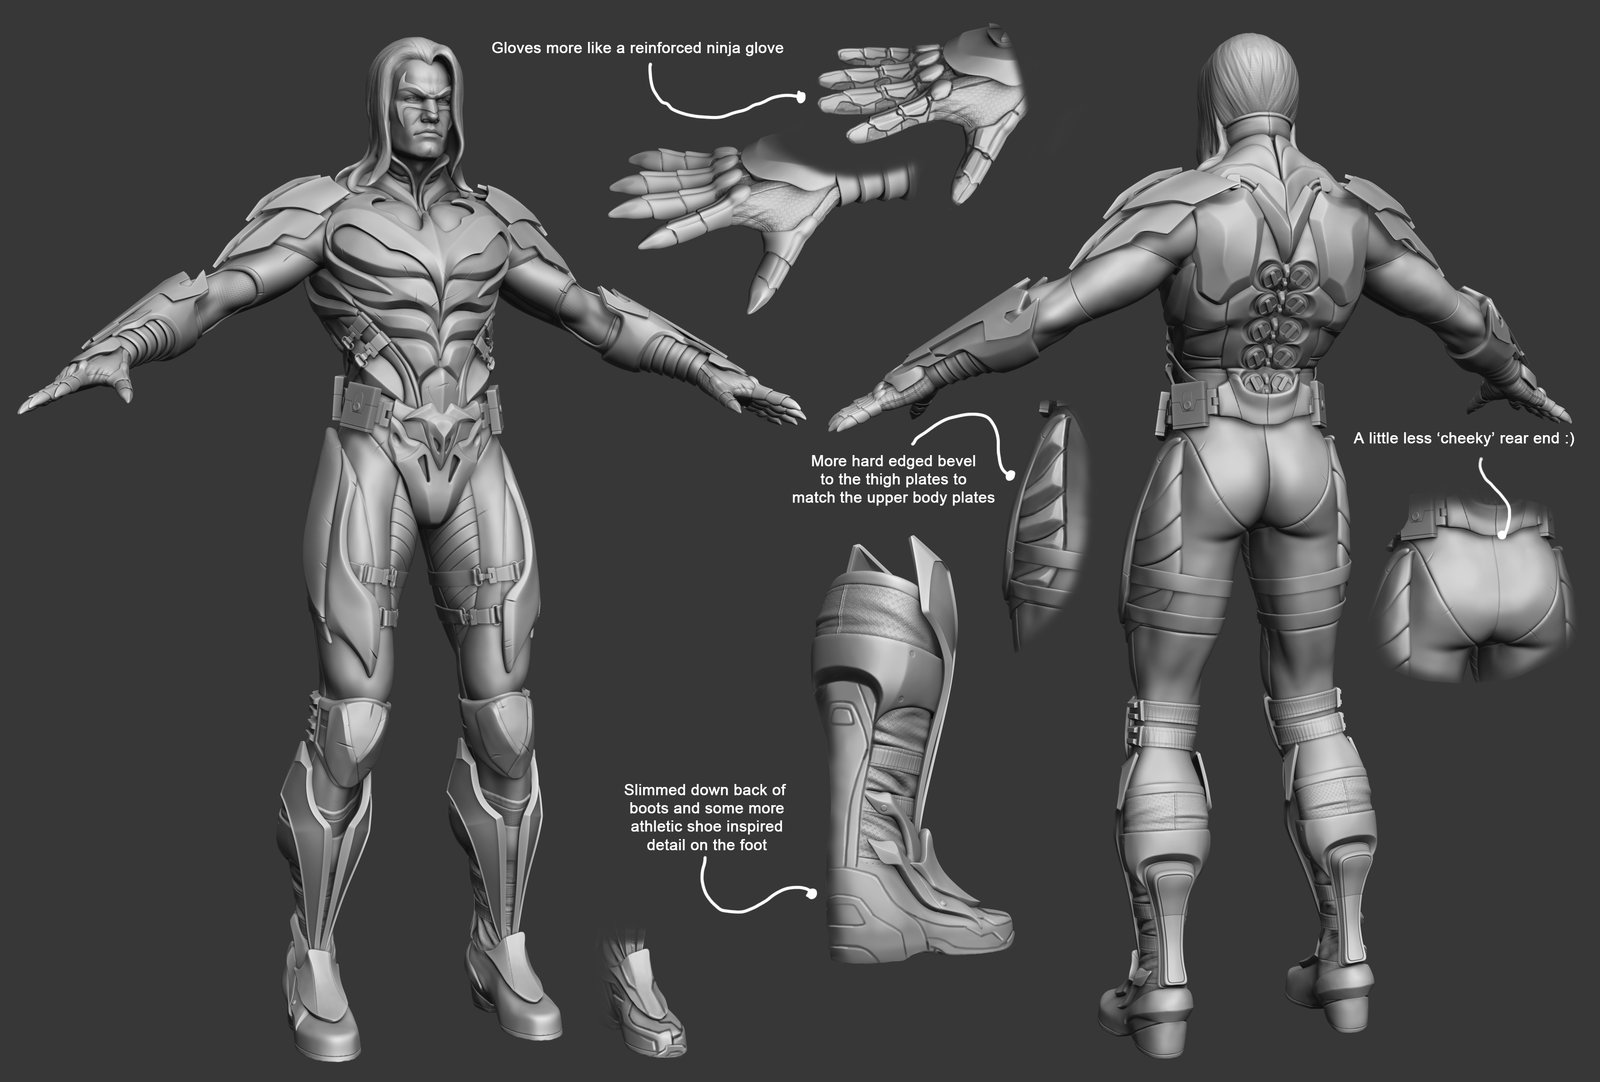 WIPS on the creation of Nightwing, and comments on what worked best, or looked better.